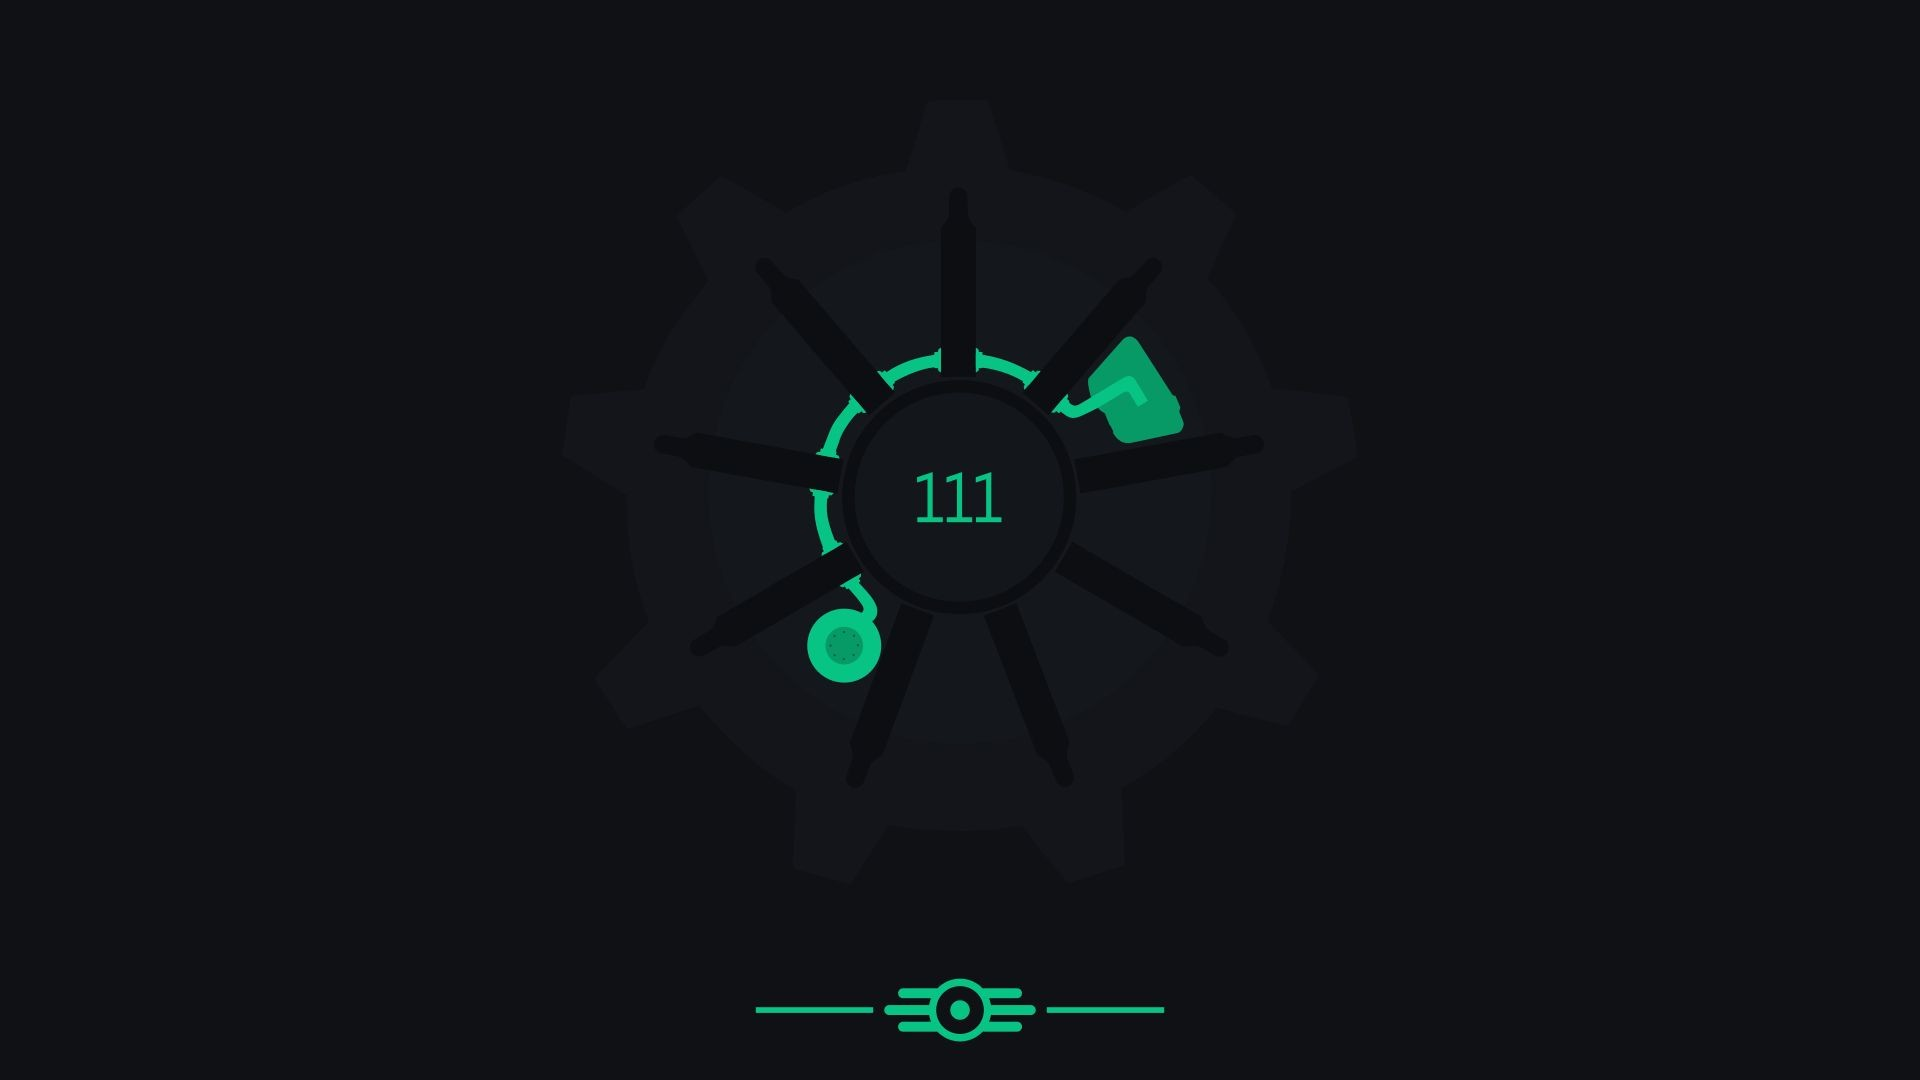 Res: 1920x1080, Fallout 4 Vault 111 minimalist wallpaper pack [4k] by CM2D on